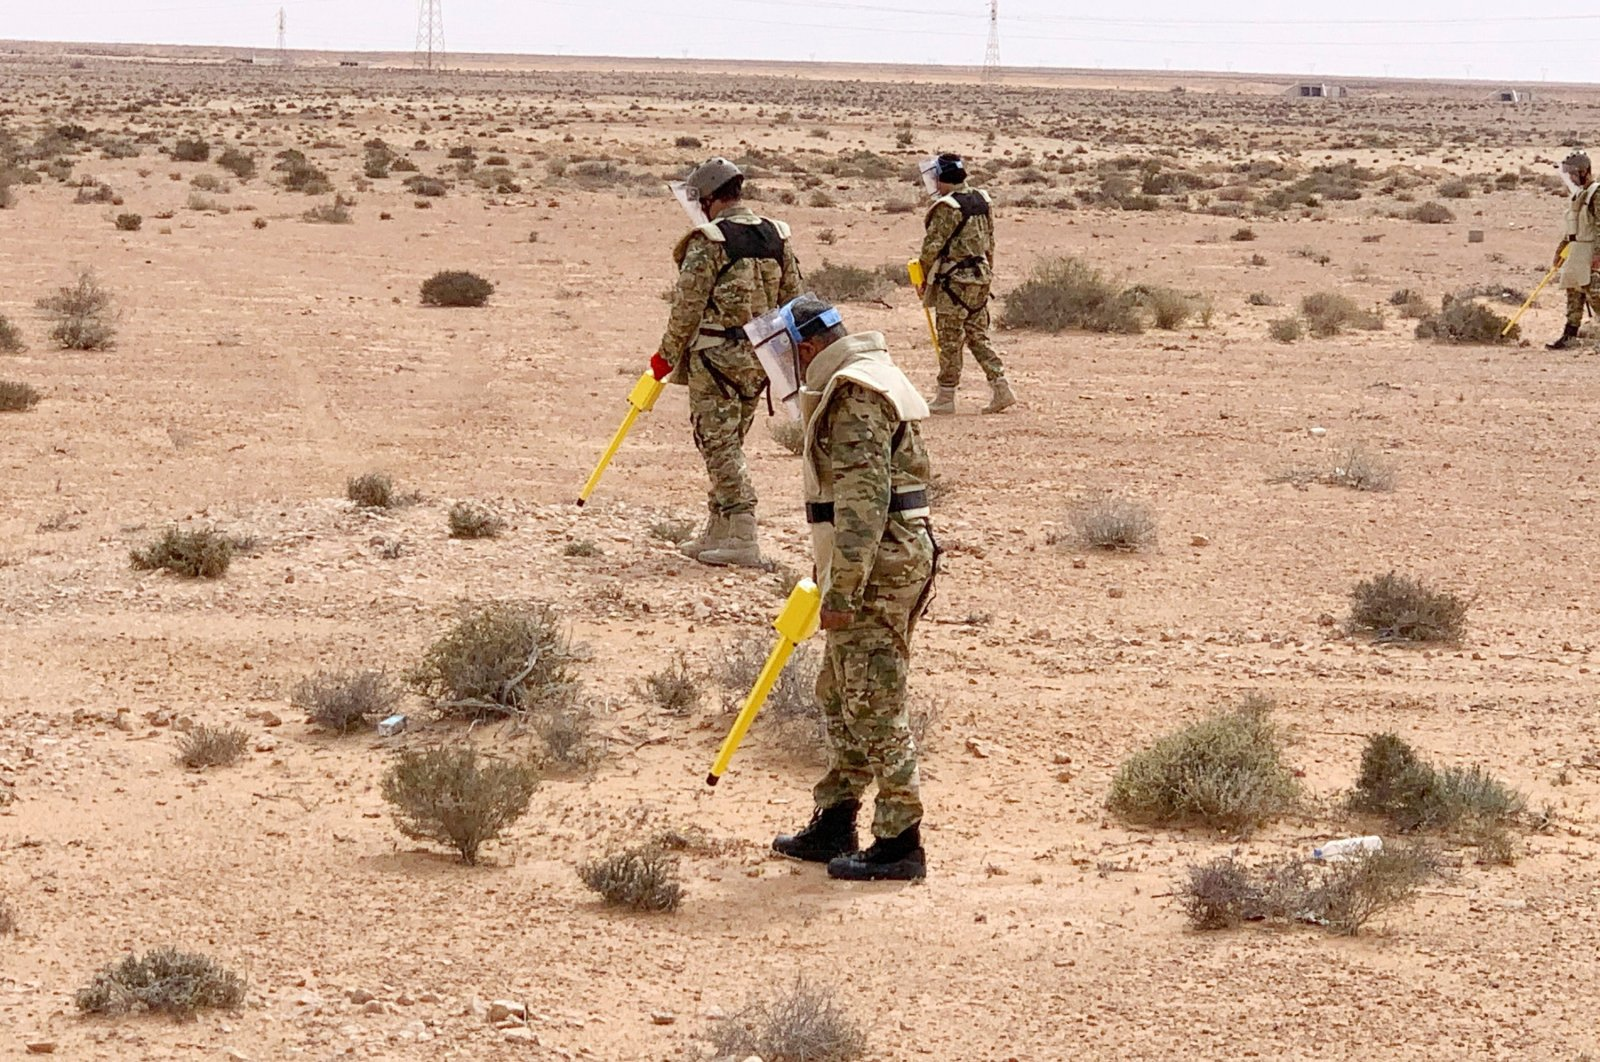 Members of the military engineering team dismantle mines in Abu Grein, Libya, March 13, 2021. (REUTERS Photo)